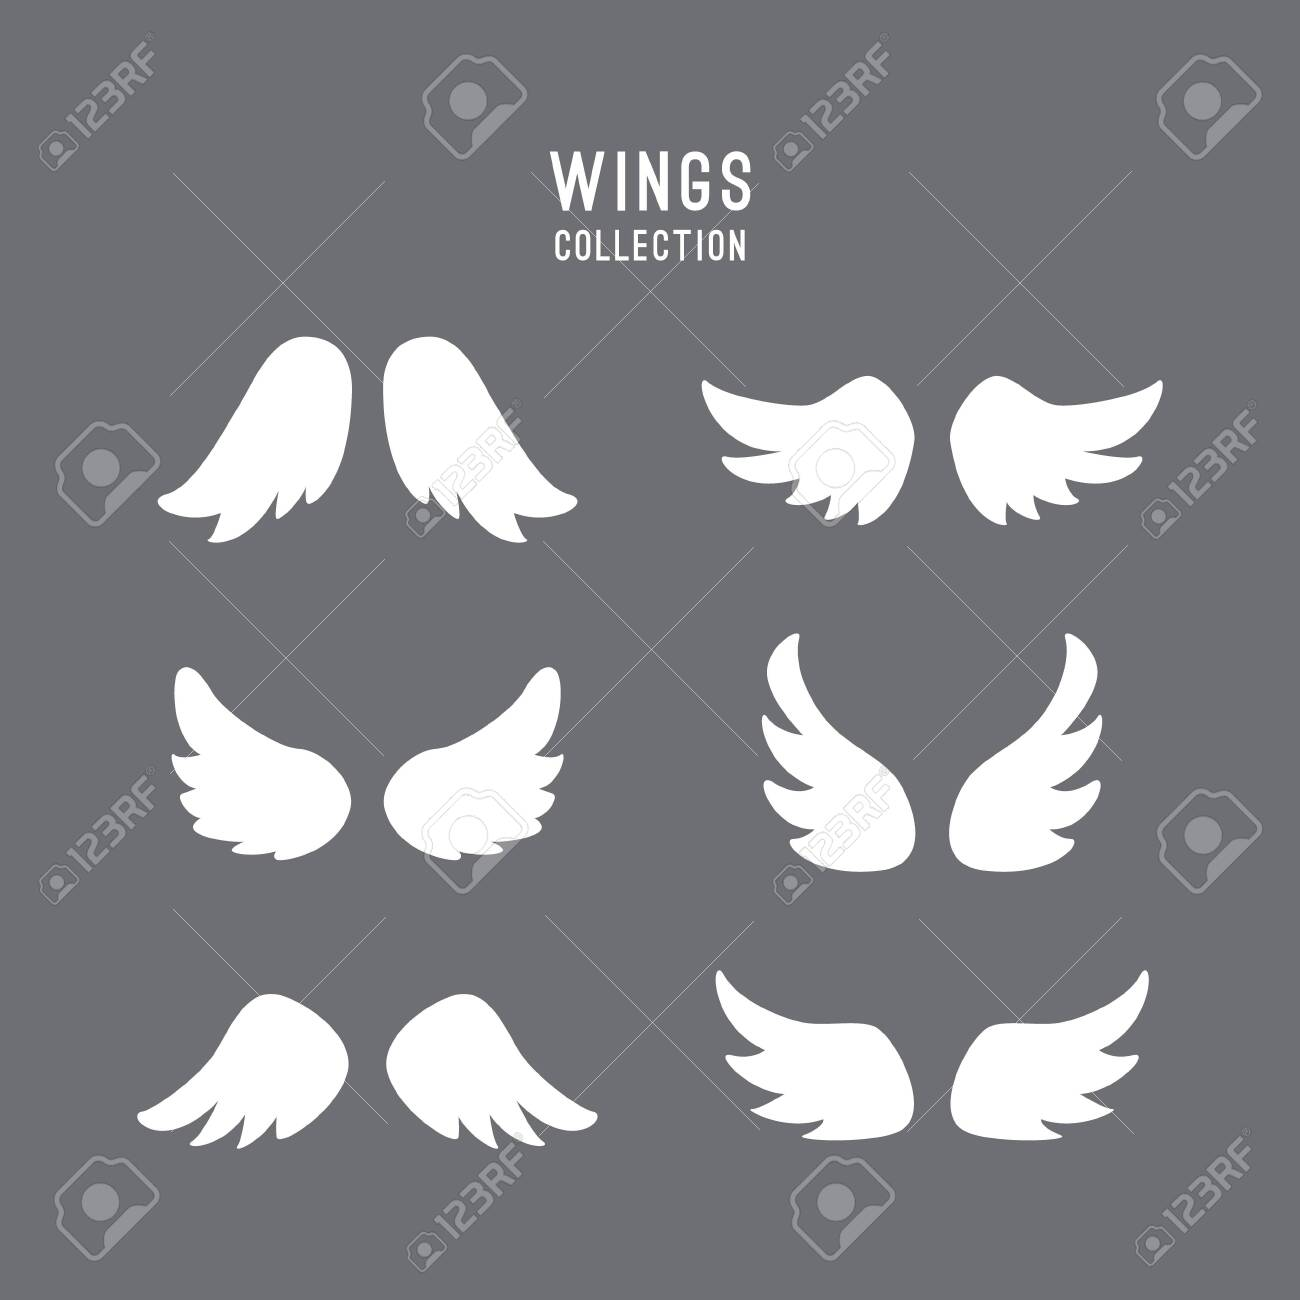 vector wings logo set winged logo company and icon wing flying royalty free cliparts vectors and stock illustration image 119690523 123rf com